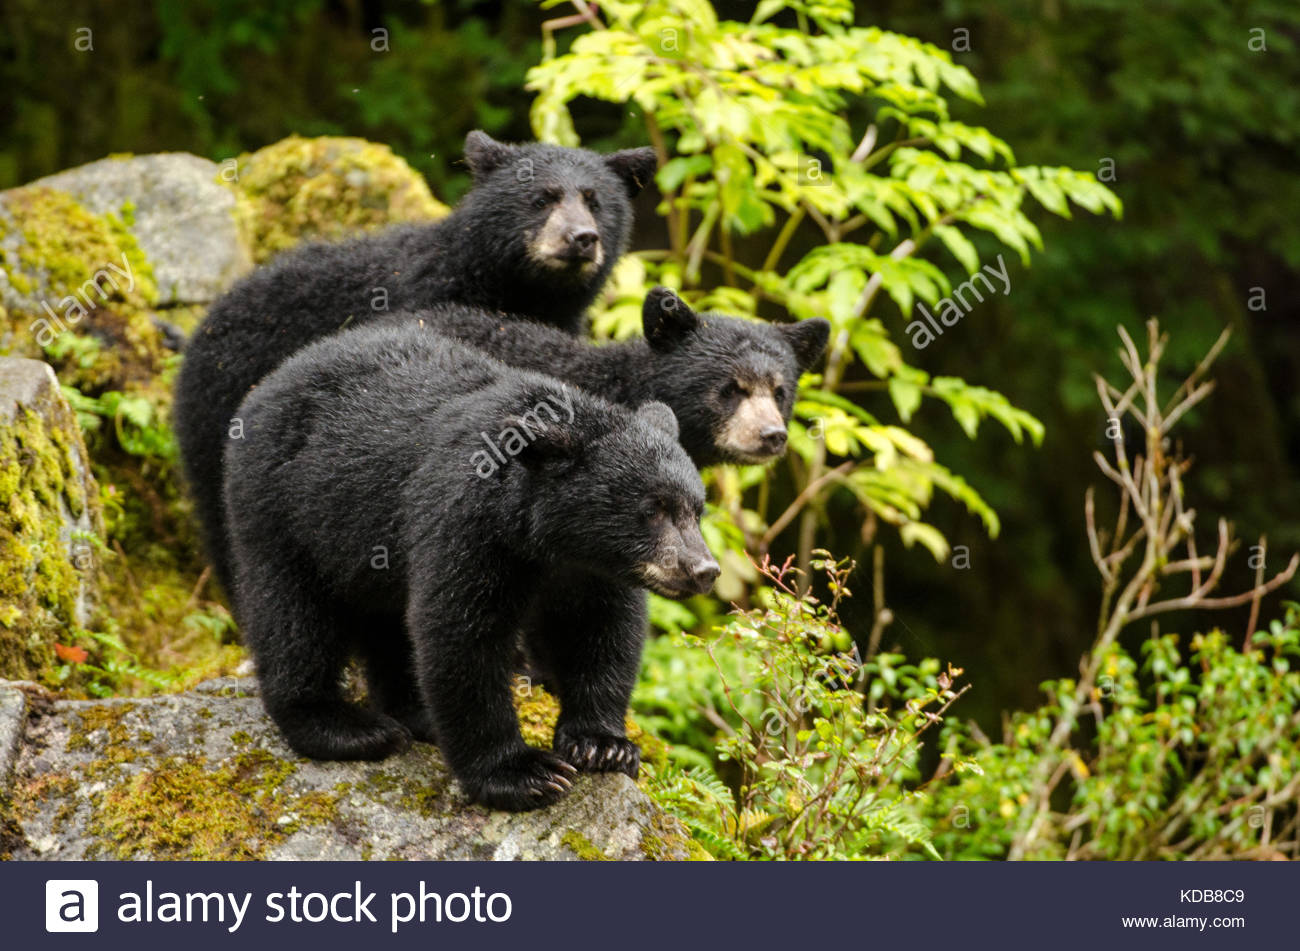 Three black bear cubs, Ursus americanus, standing on a rock. - Stock Image